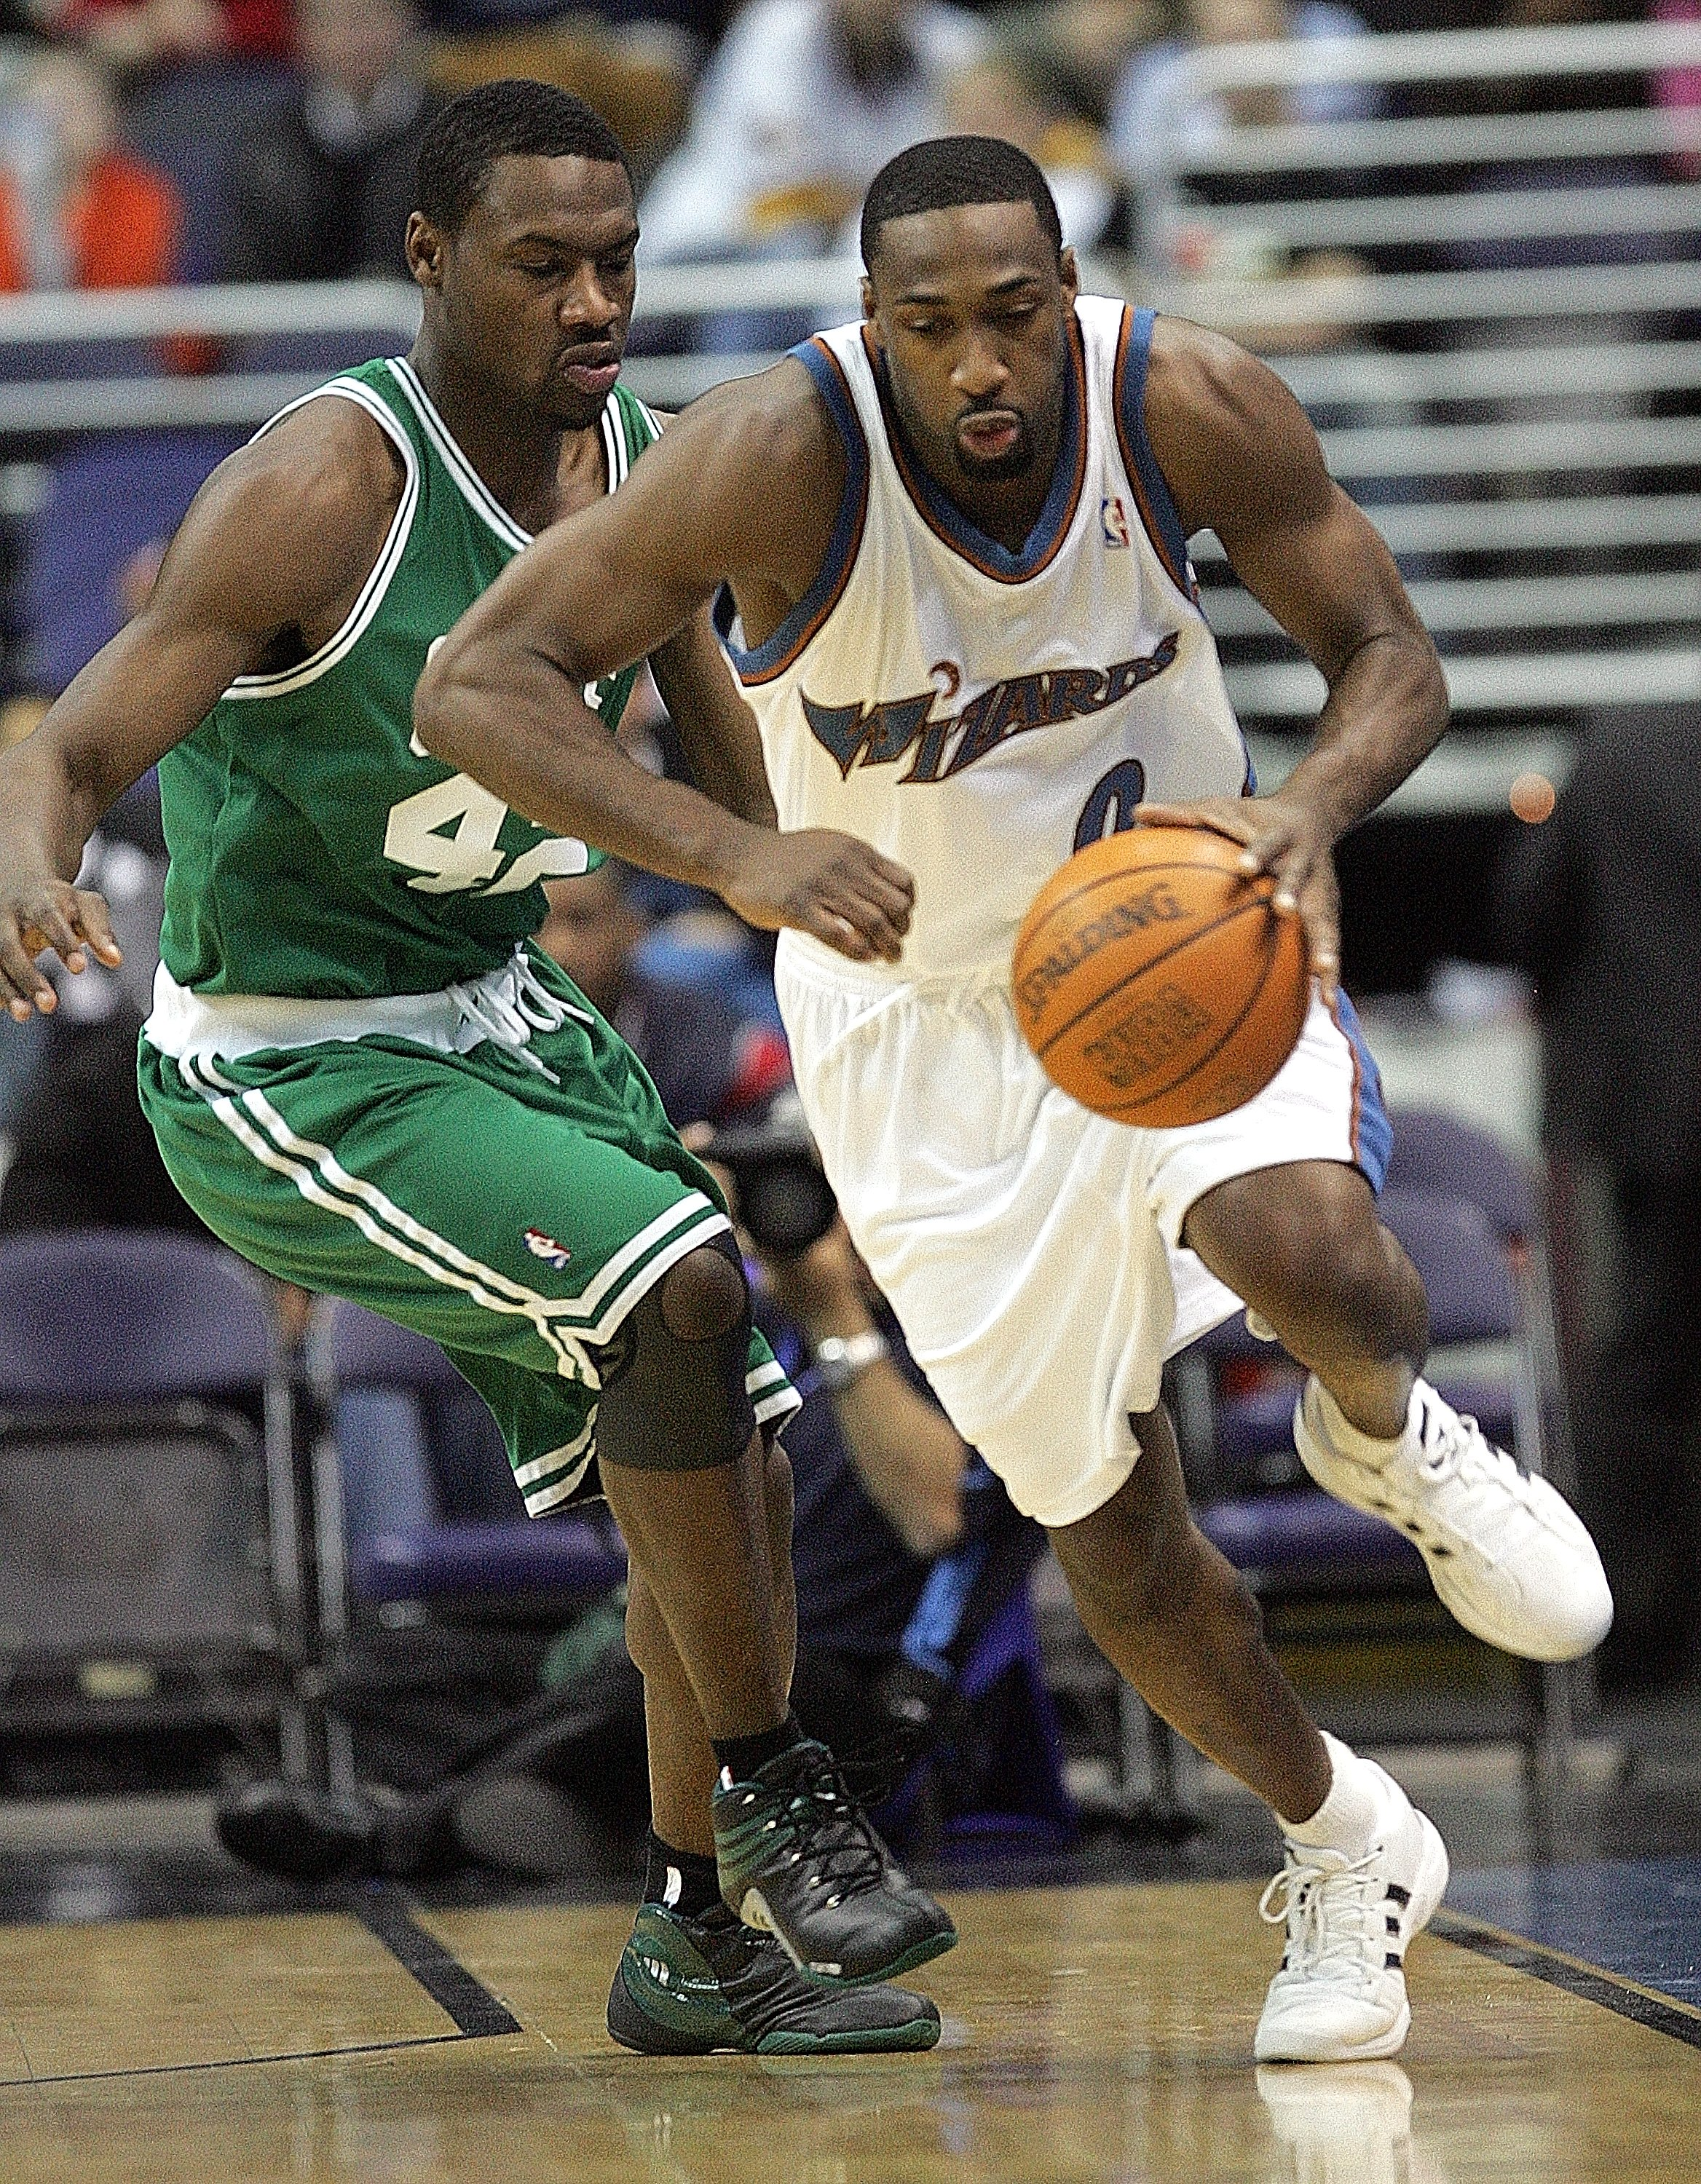 Washinton Wizards Gilbert Arenas (0) breaks free from pressure by Boston Celtics Tony Allen (42) during their game played at the MCI Center in Washington, D.C., Saturday night, January 7, 2006.